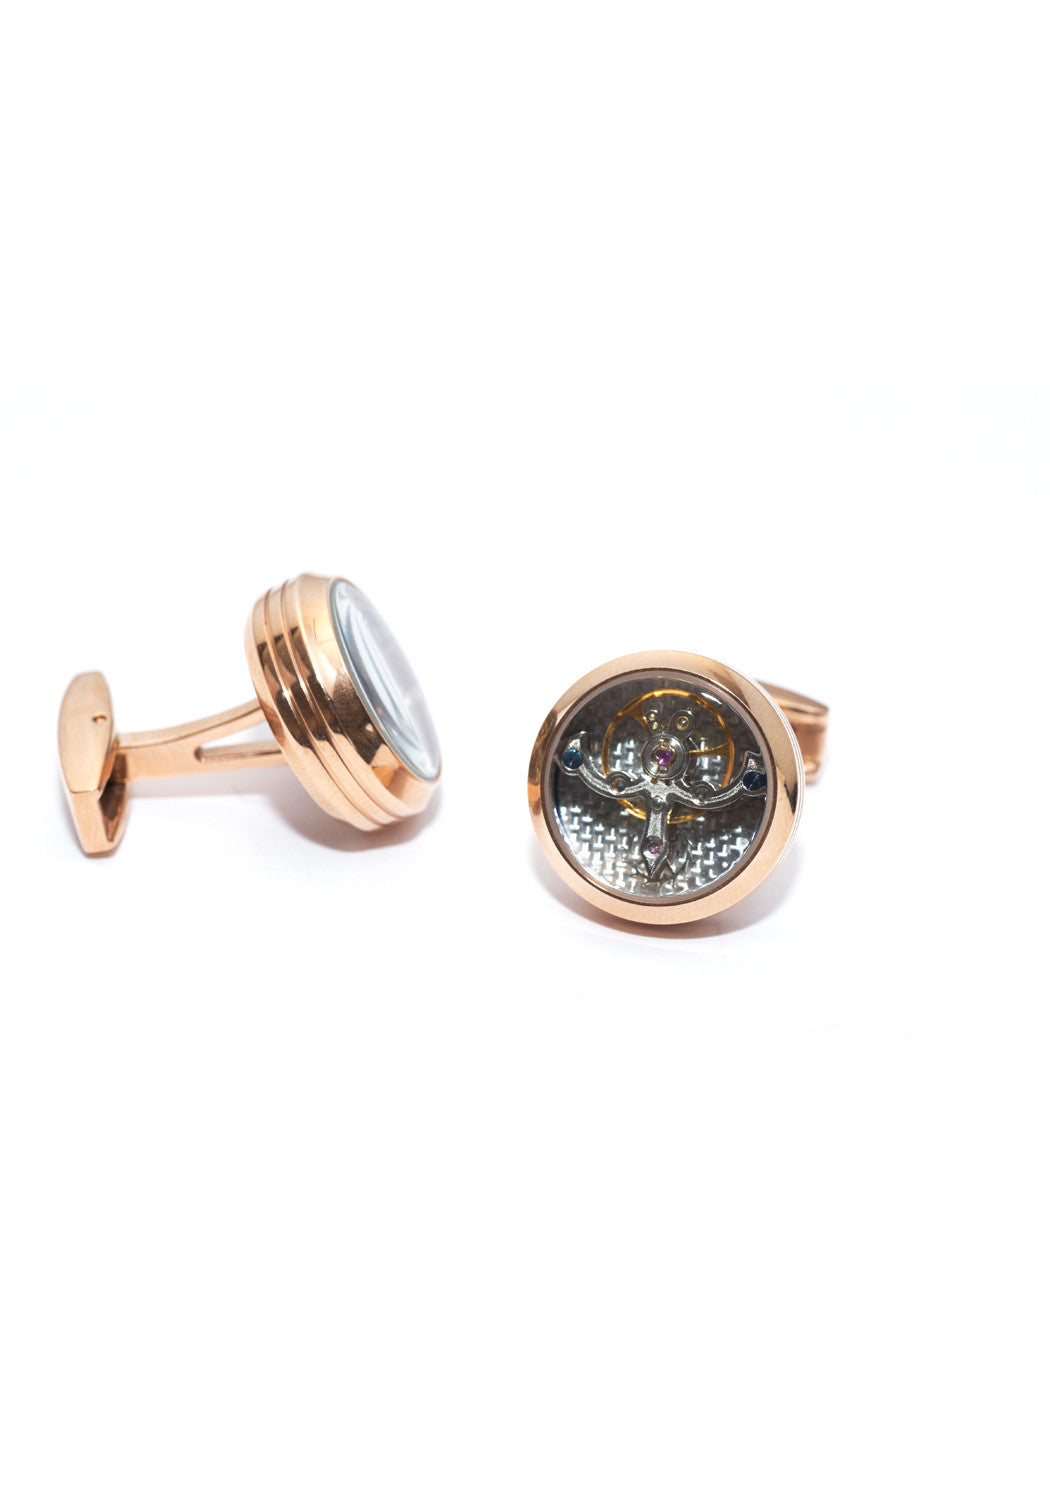 Rose Gold Plated & Silver Tourbillon Cufflinks